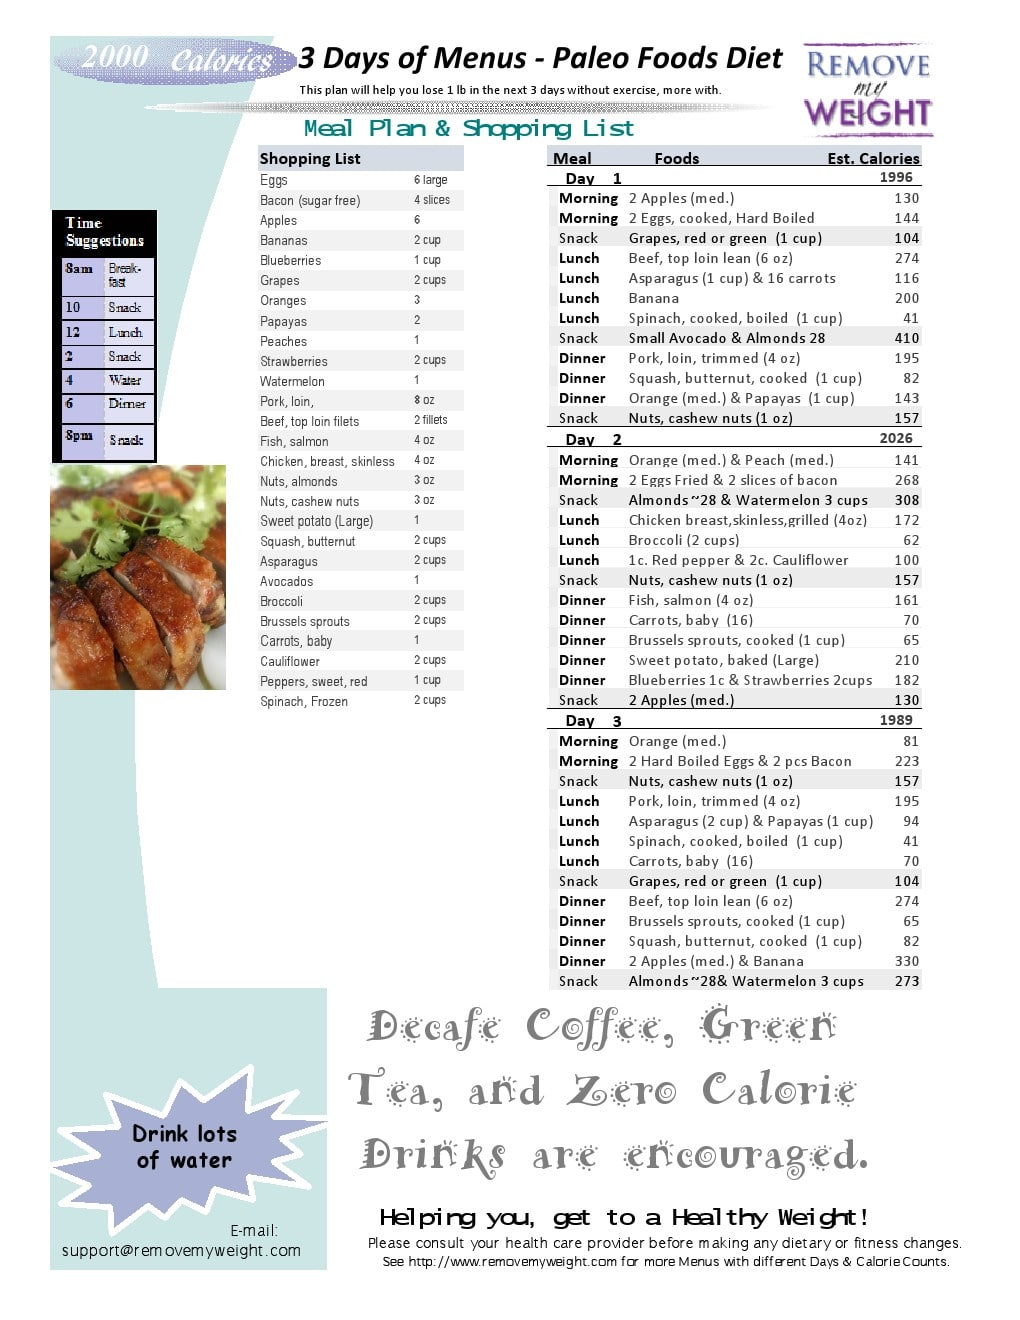 Free 2000 Calories a day 3 Day Paleo Diet with Shoppong ...